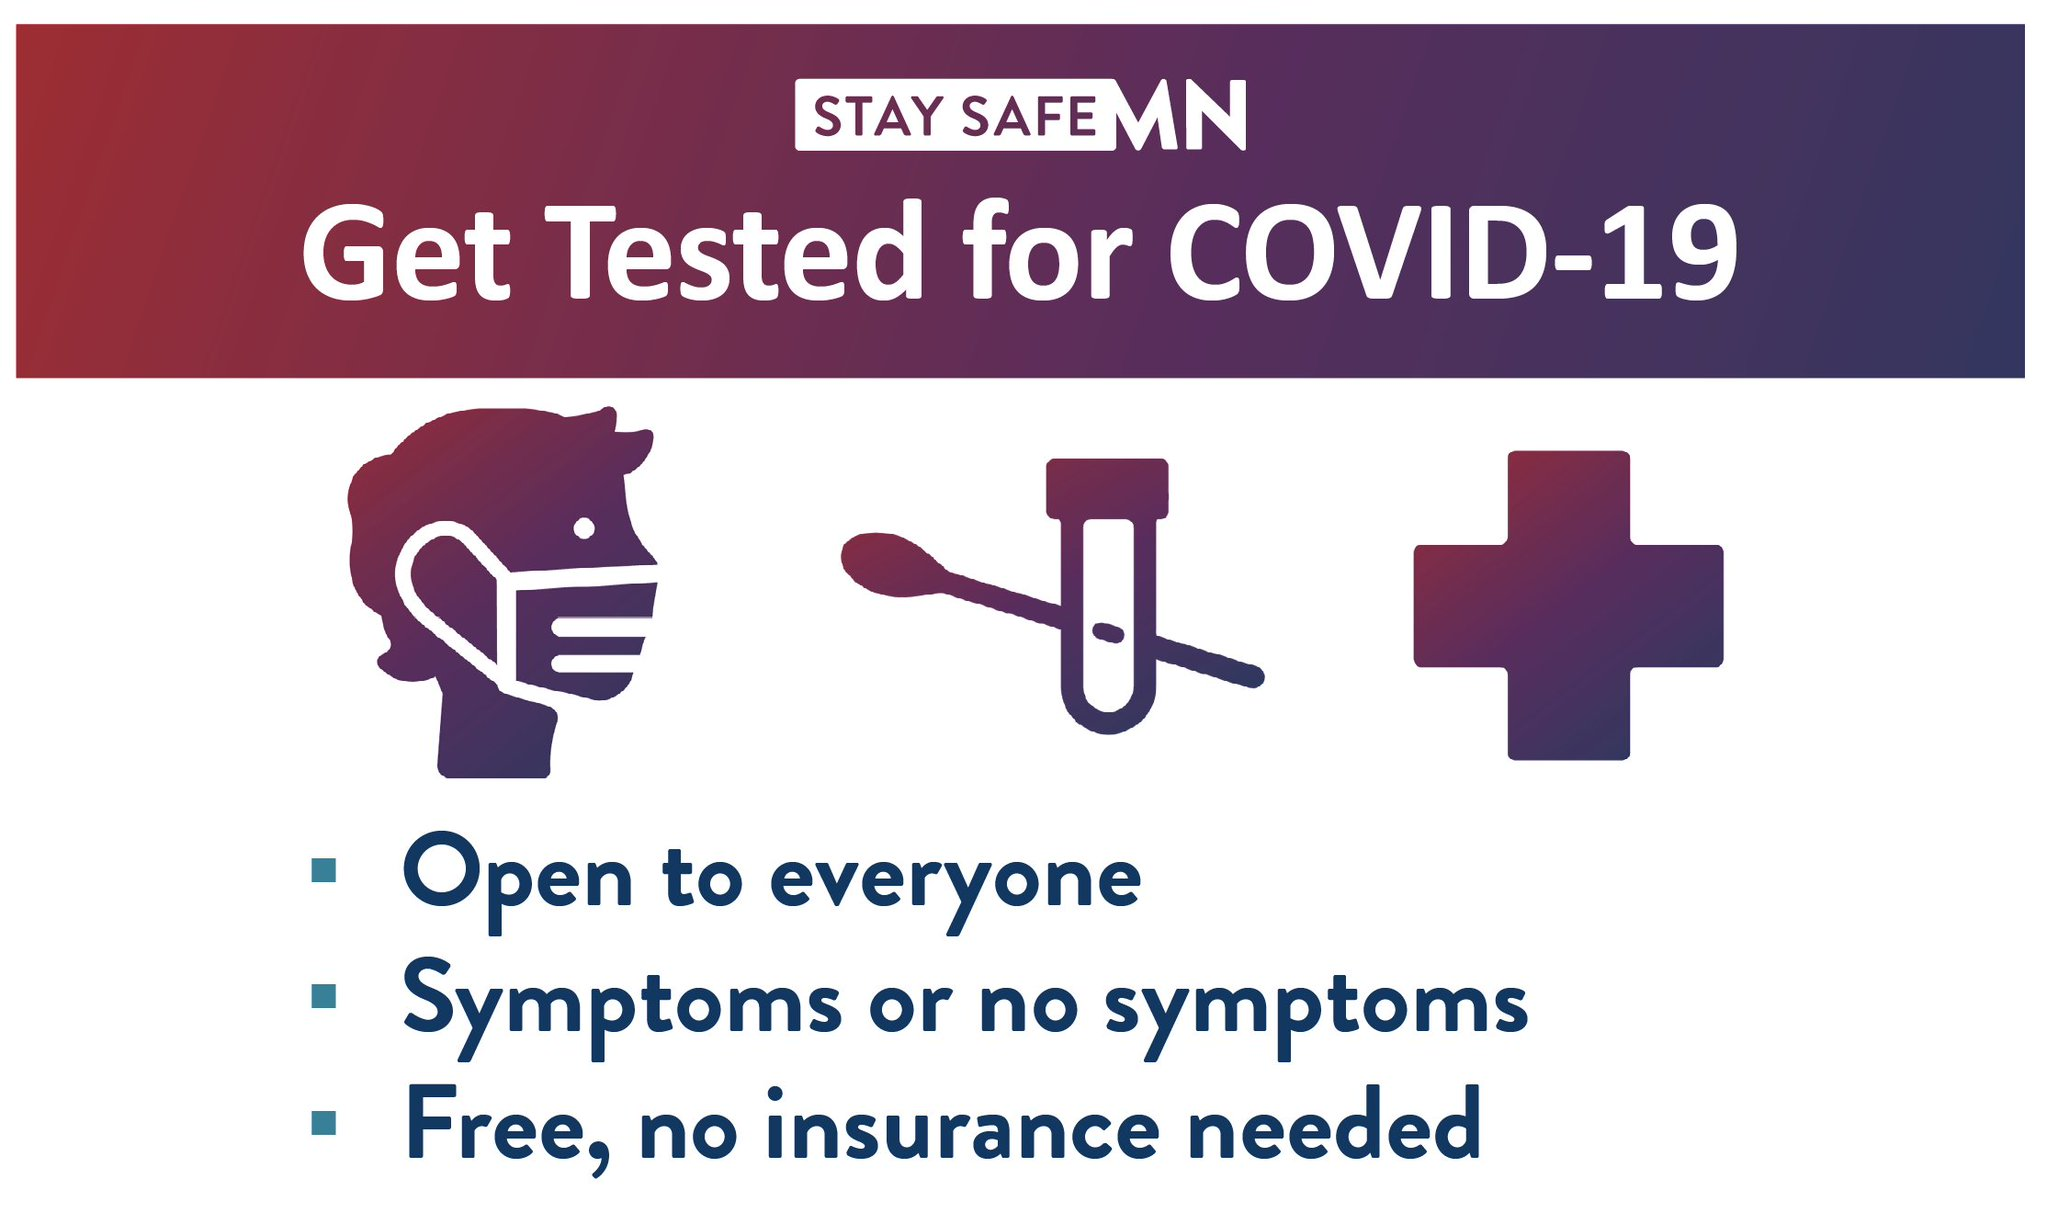 Get tested for COVID-19. Open to Everyone. Symptoms or no symptoms. Free, no insurance needed.